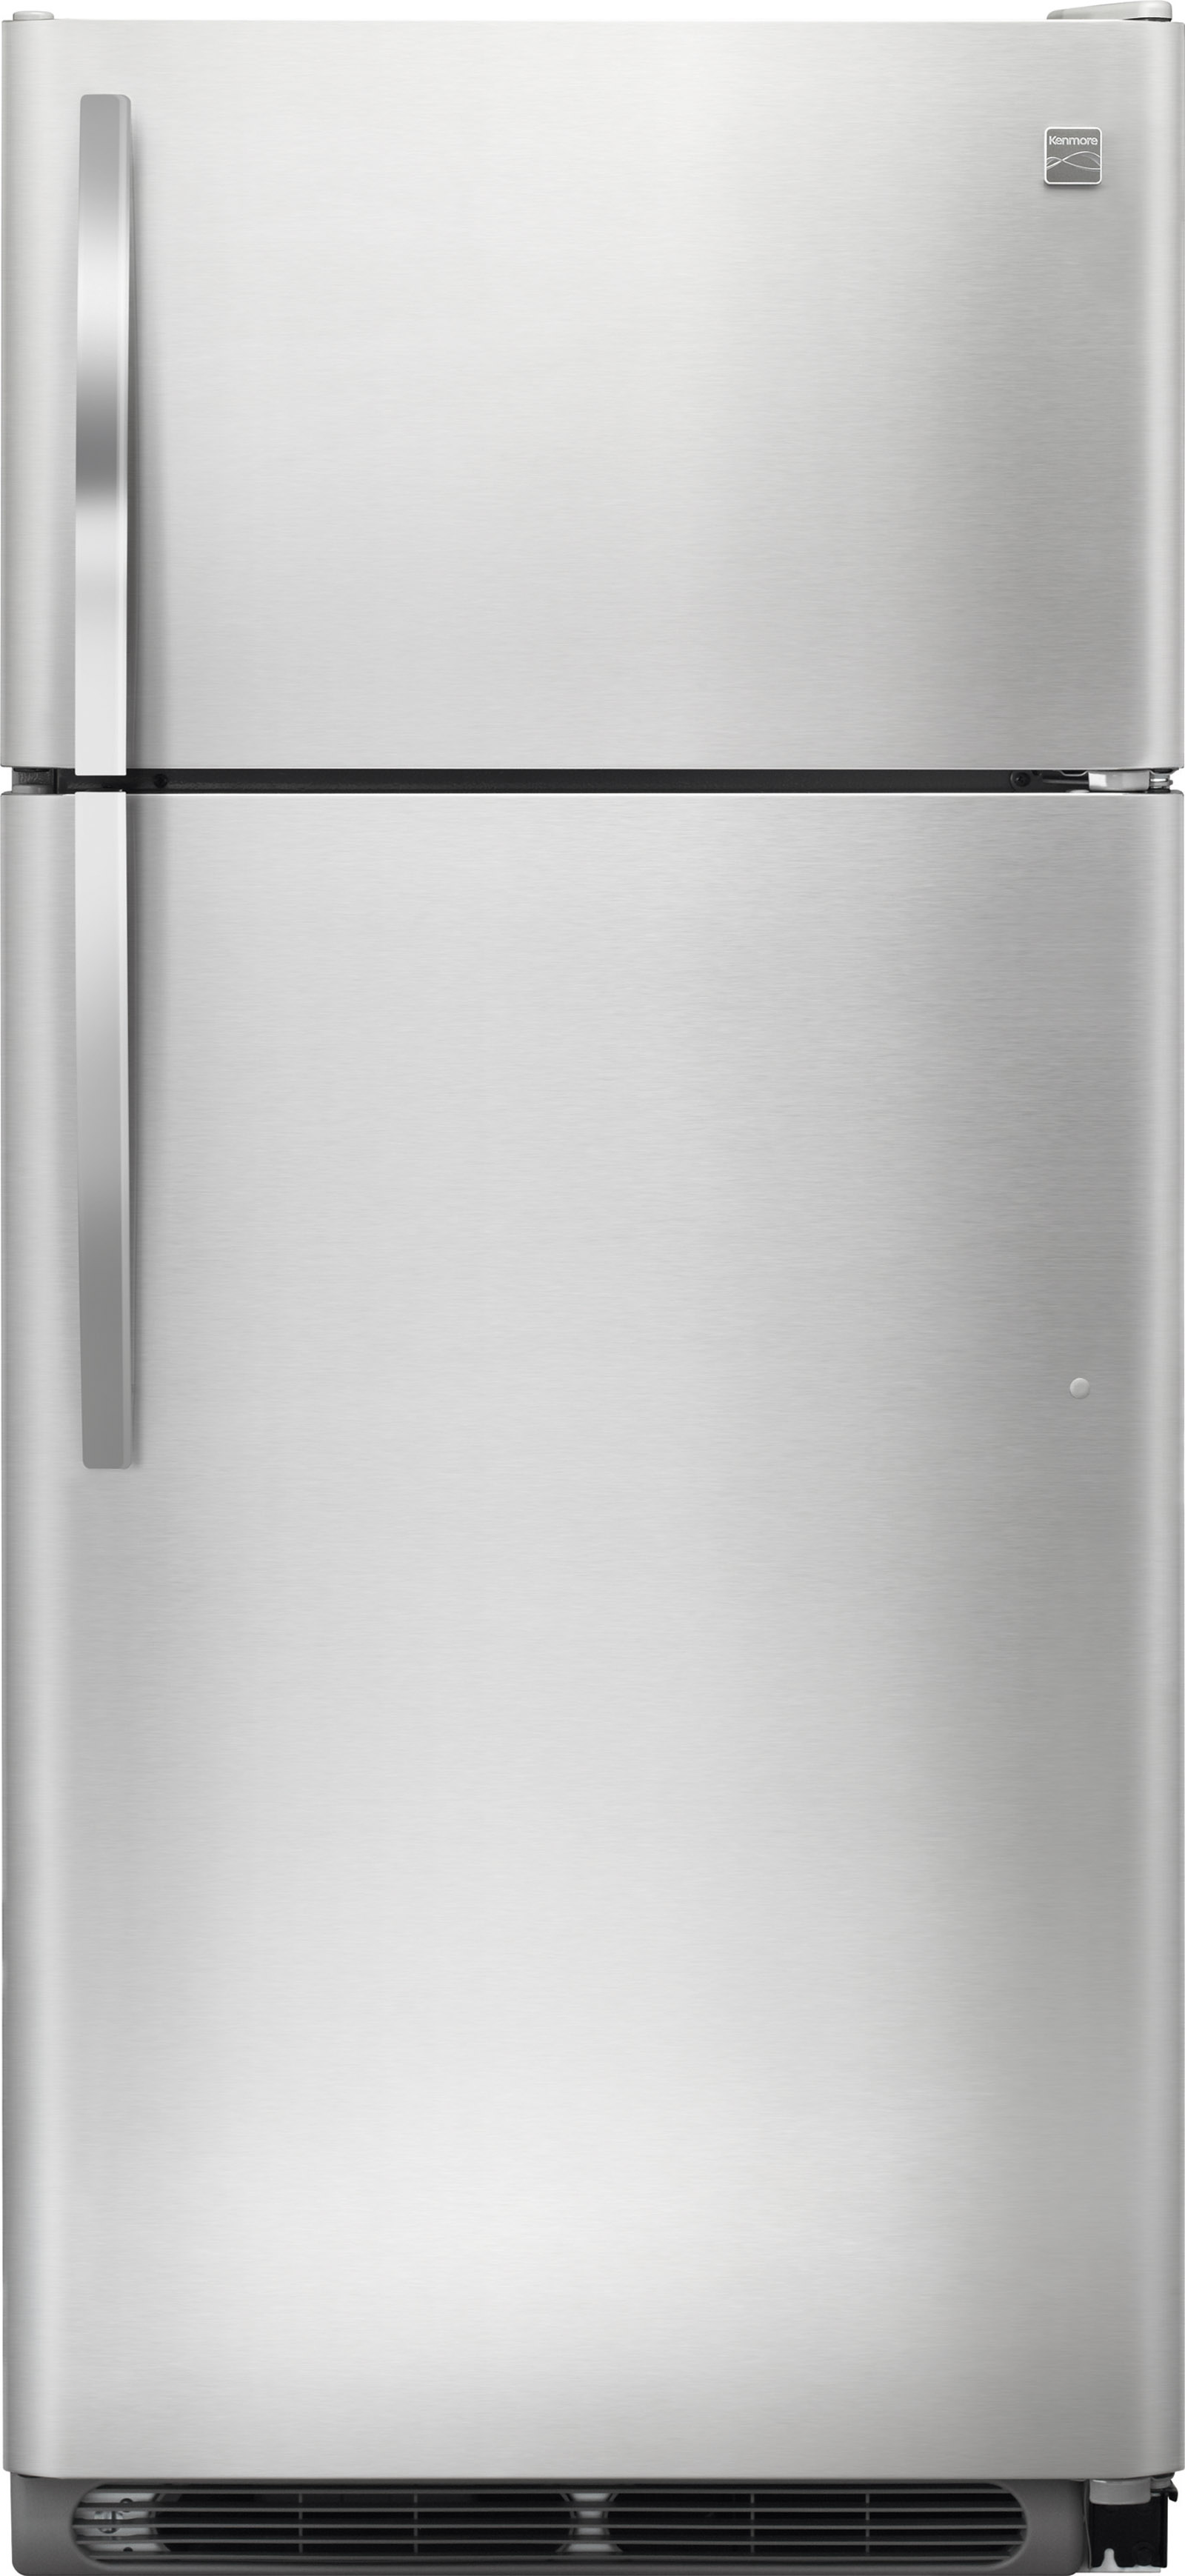 Kenmore 60505 18 cu. ft. Top Freezer Refrigerator w/ Glass Shelves - Stainless Steel